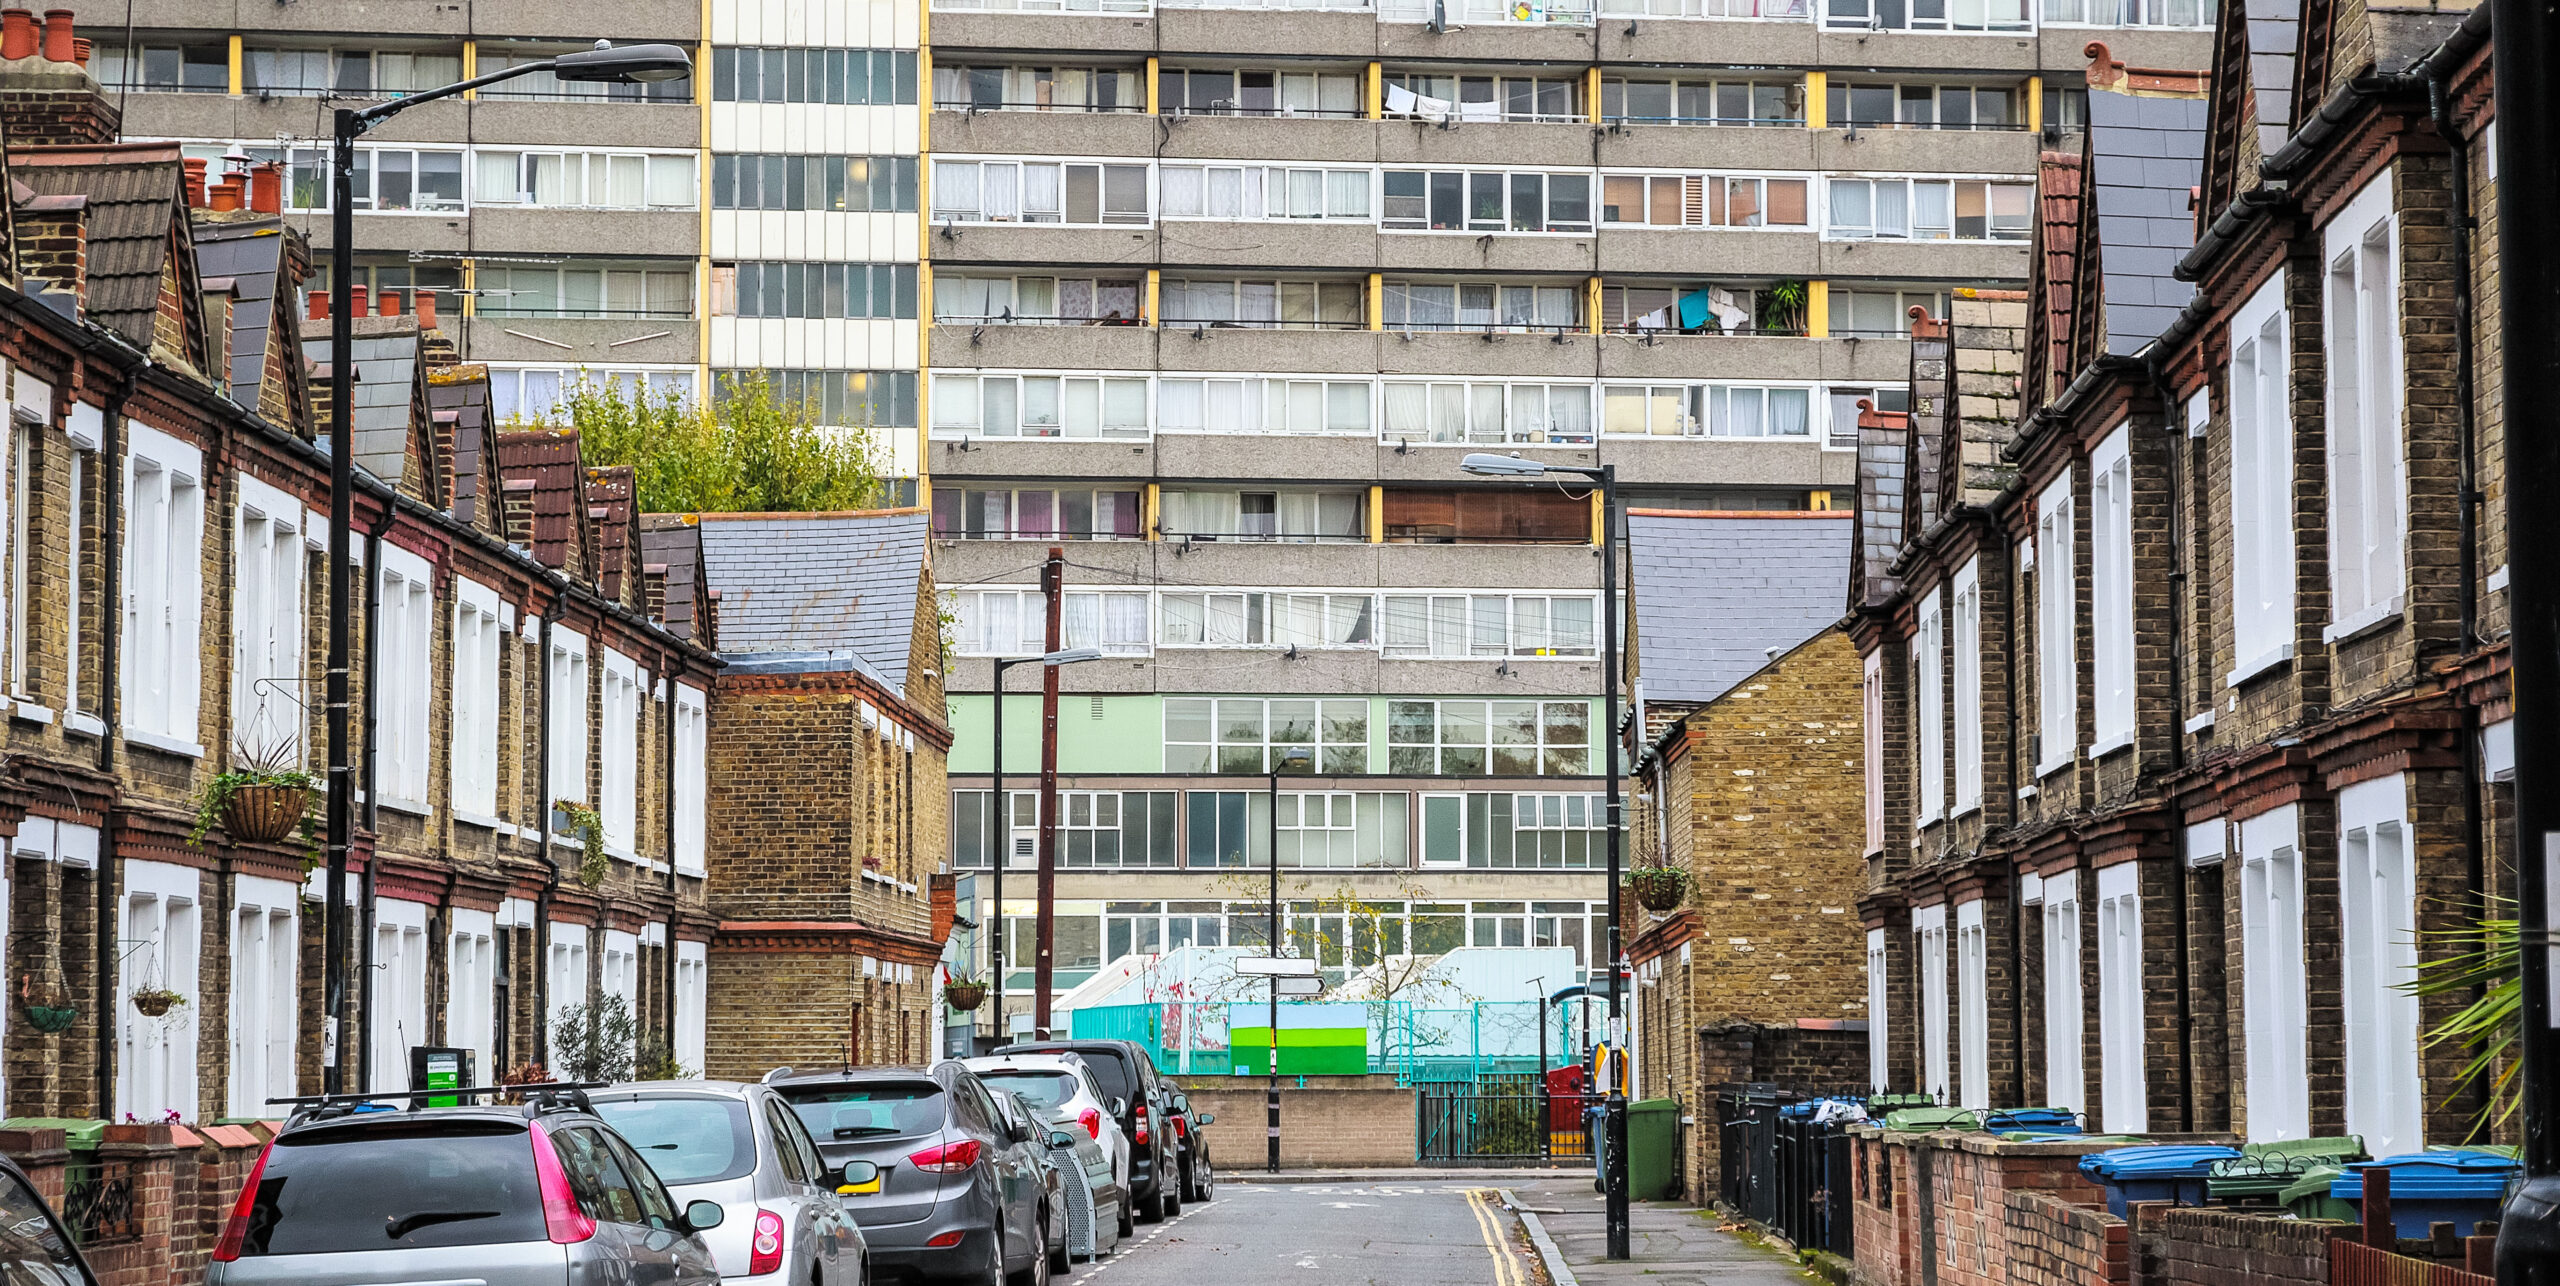 Private renters in arrears doubles during the pandemic according to Government data